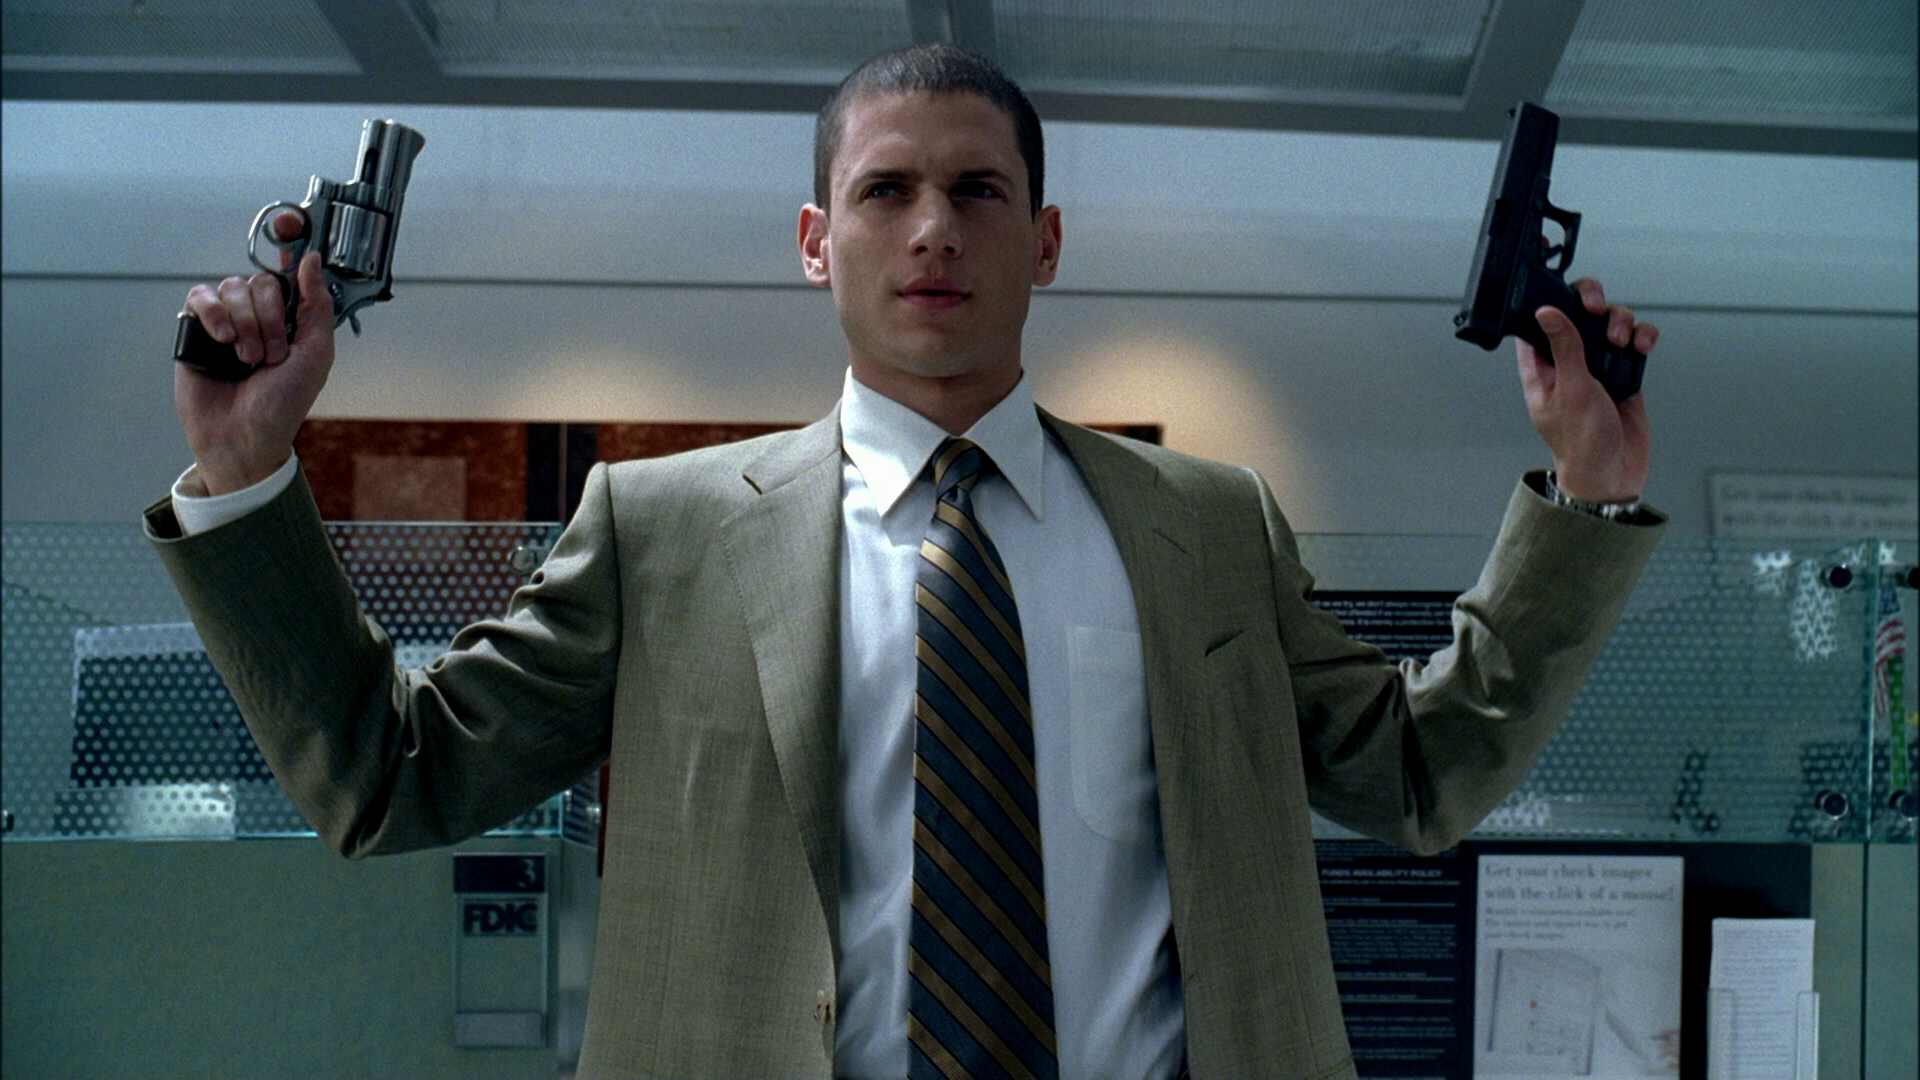 Wentworth Miller as Michael Scofield.